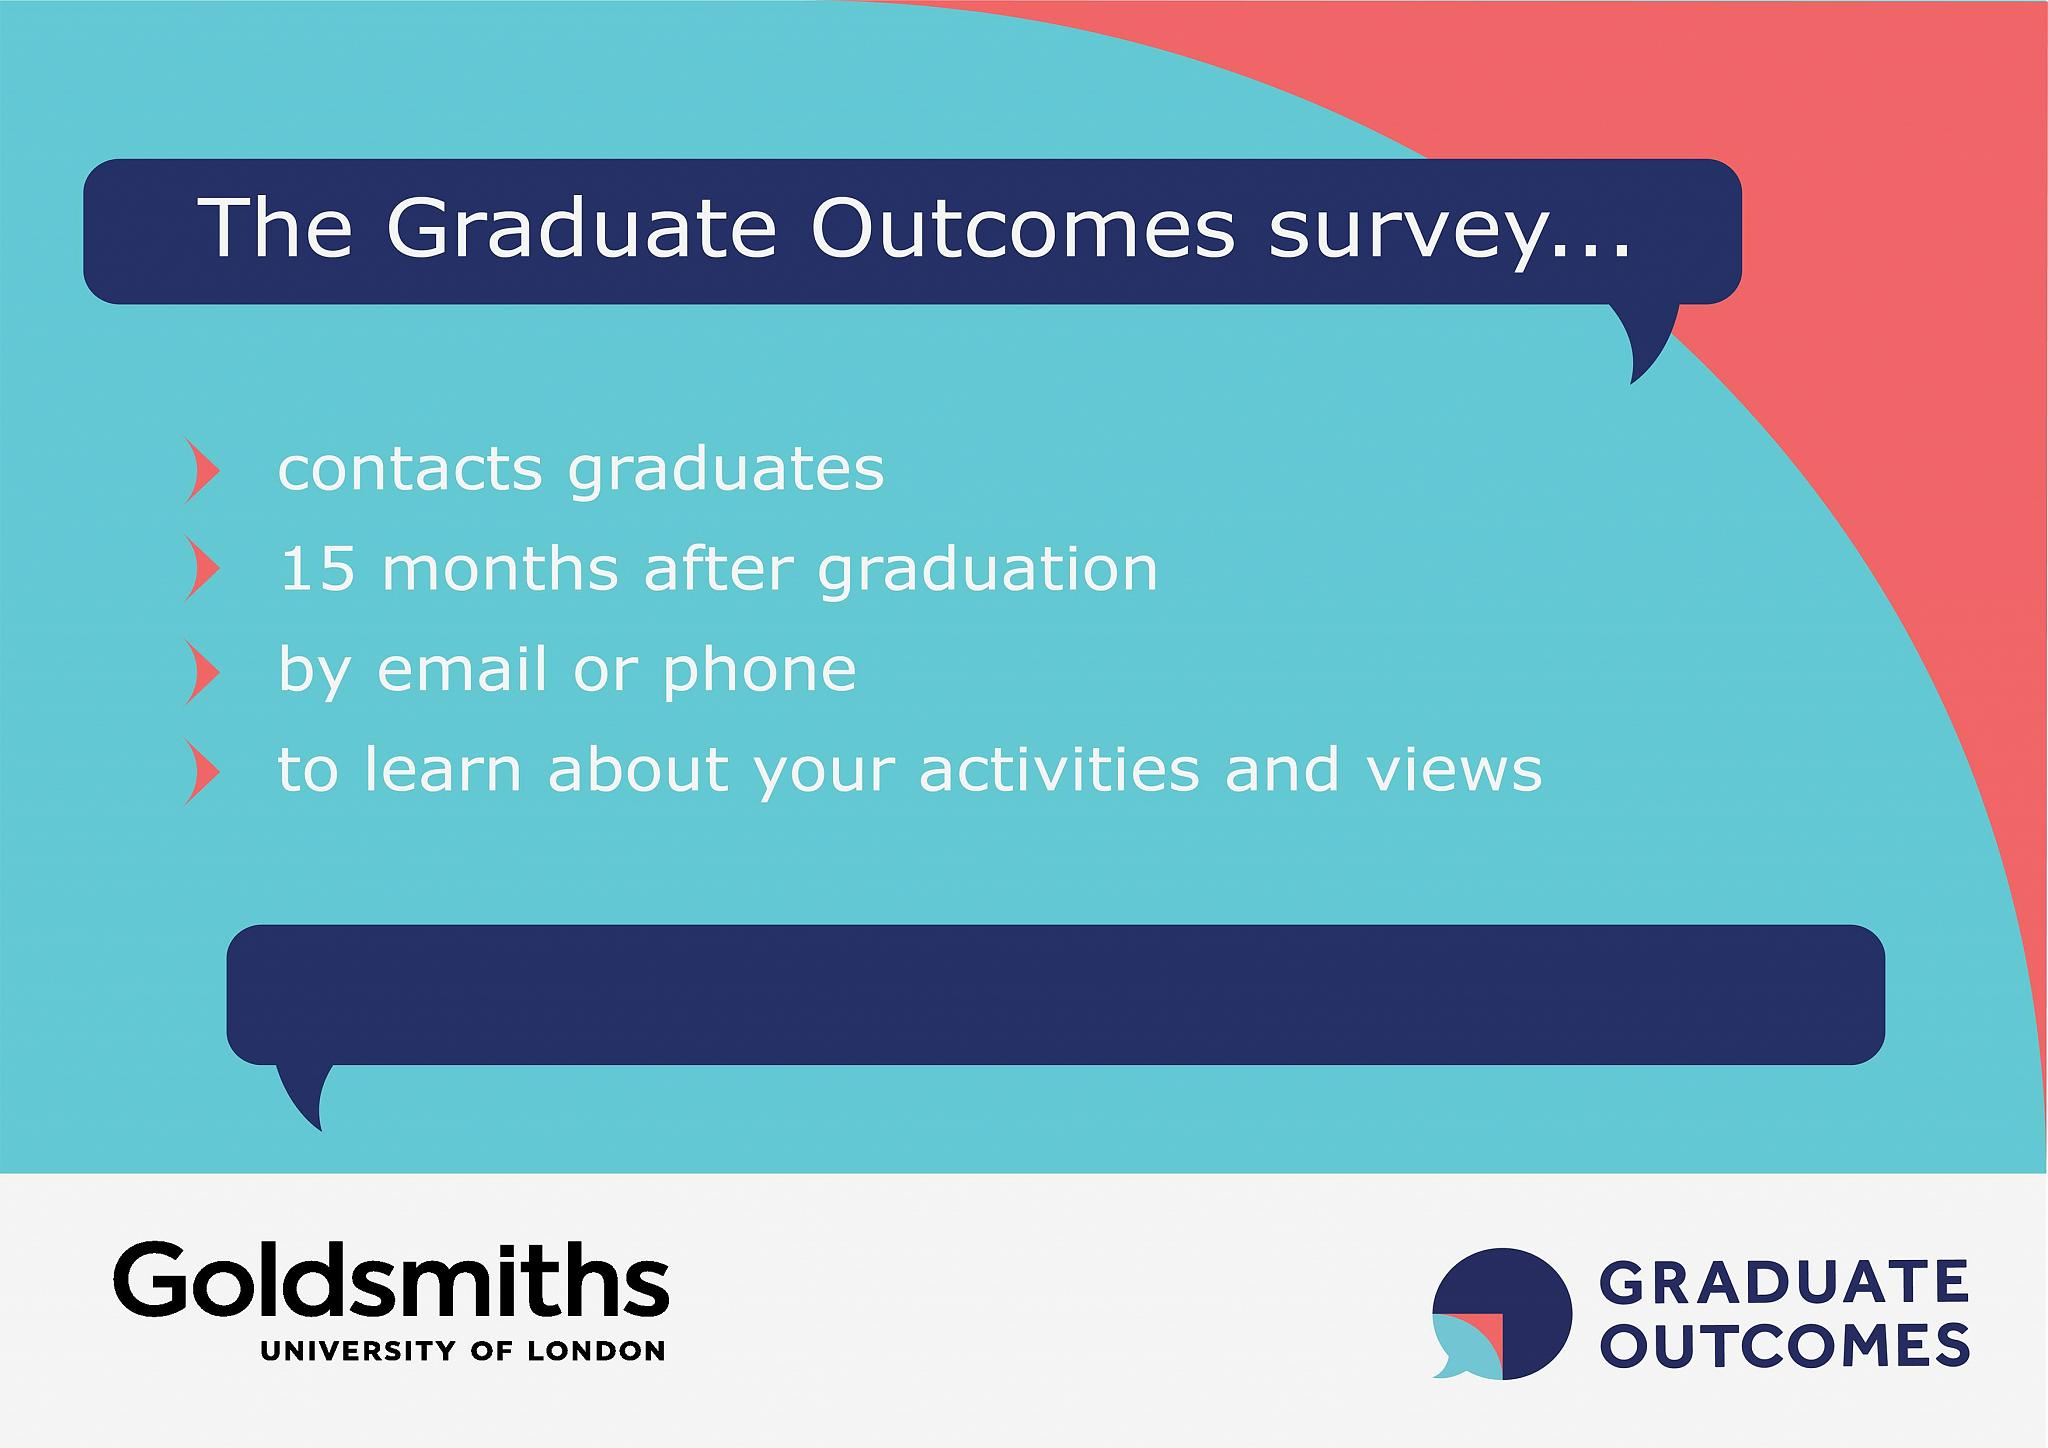 HESA infographic for the Graduate Outcomes Survey